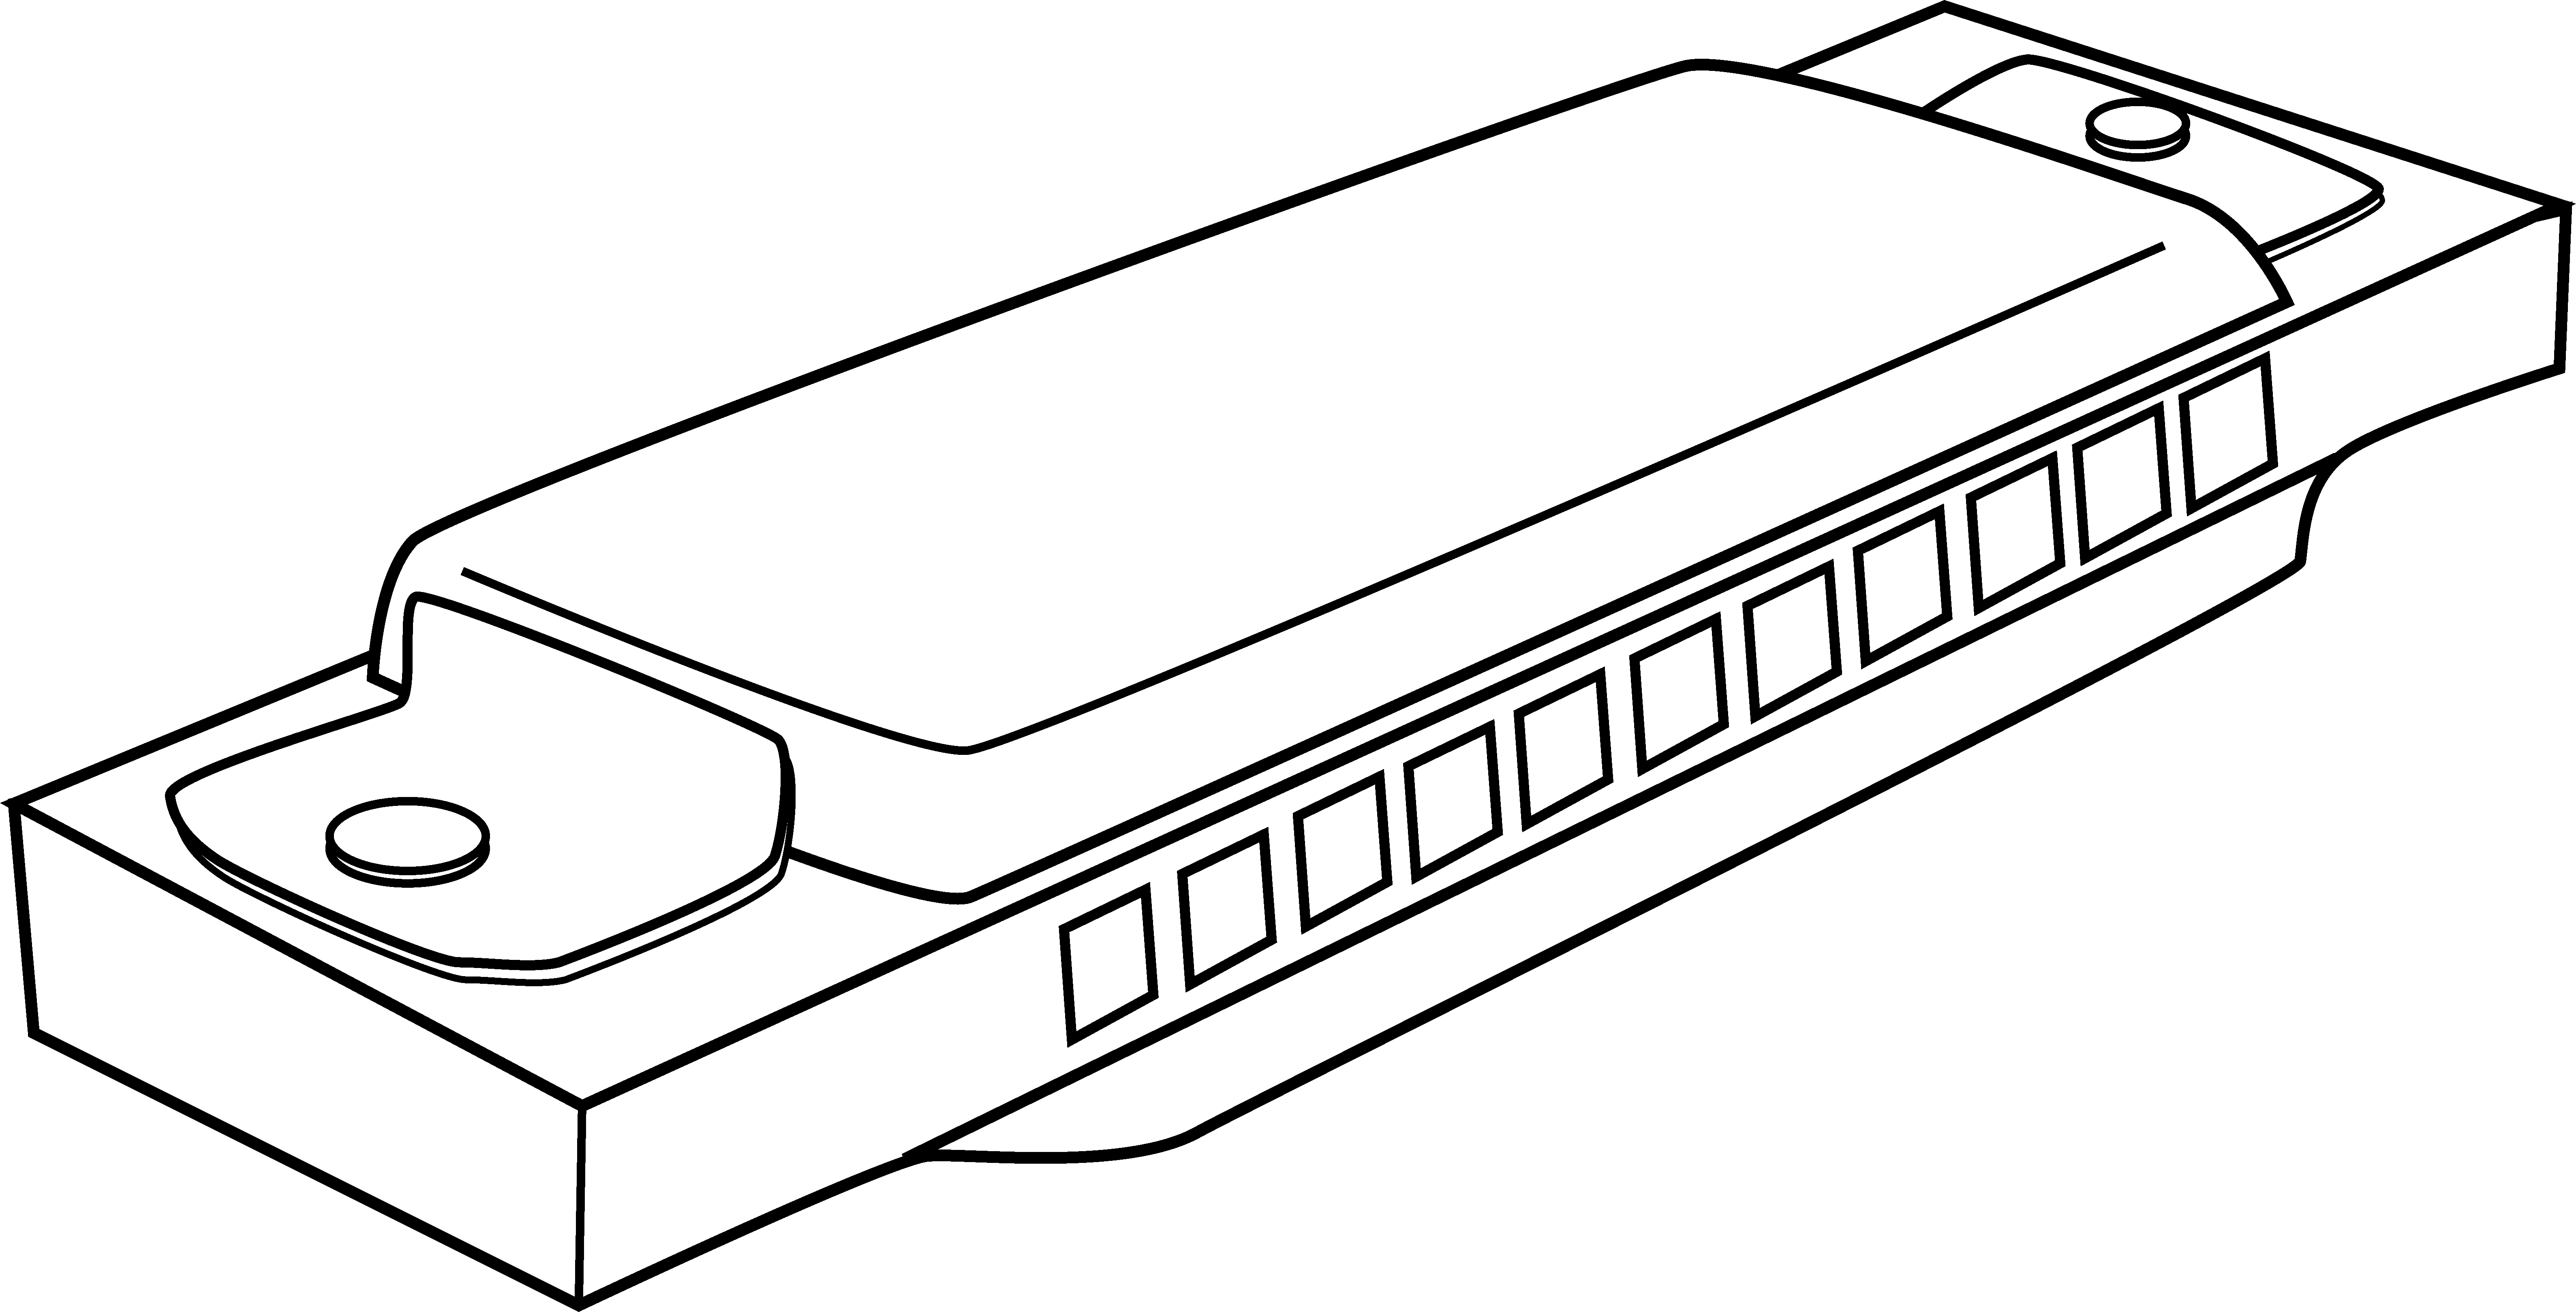 Harmonica Coloring Page.